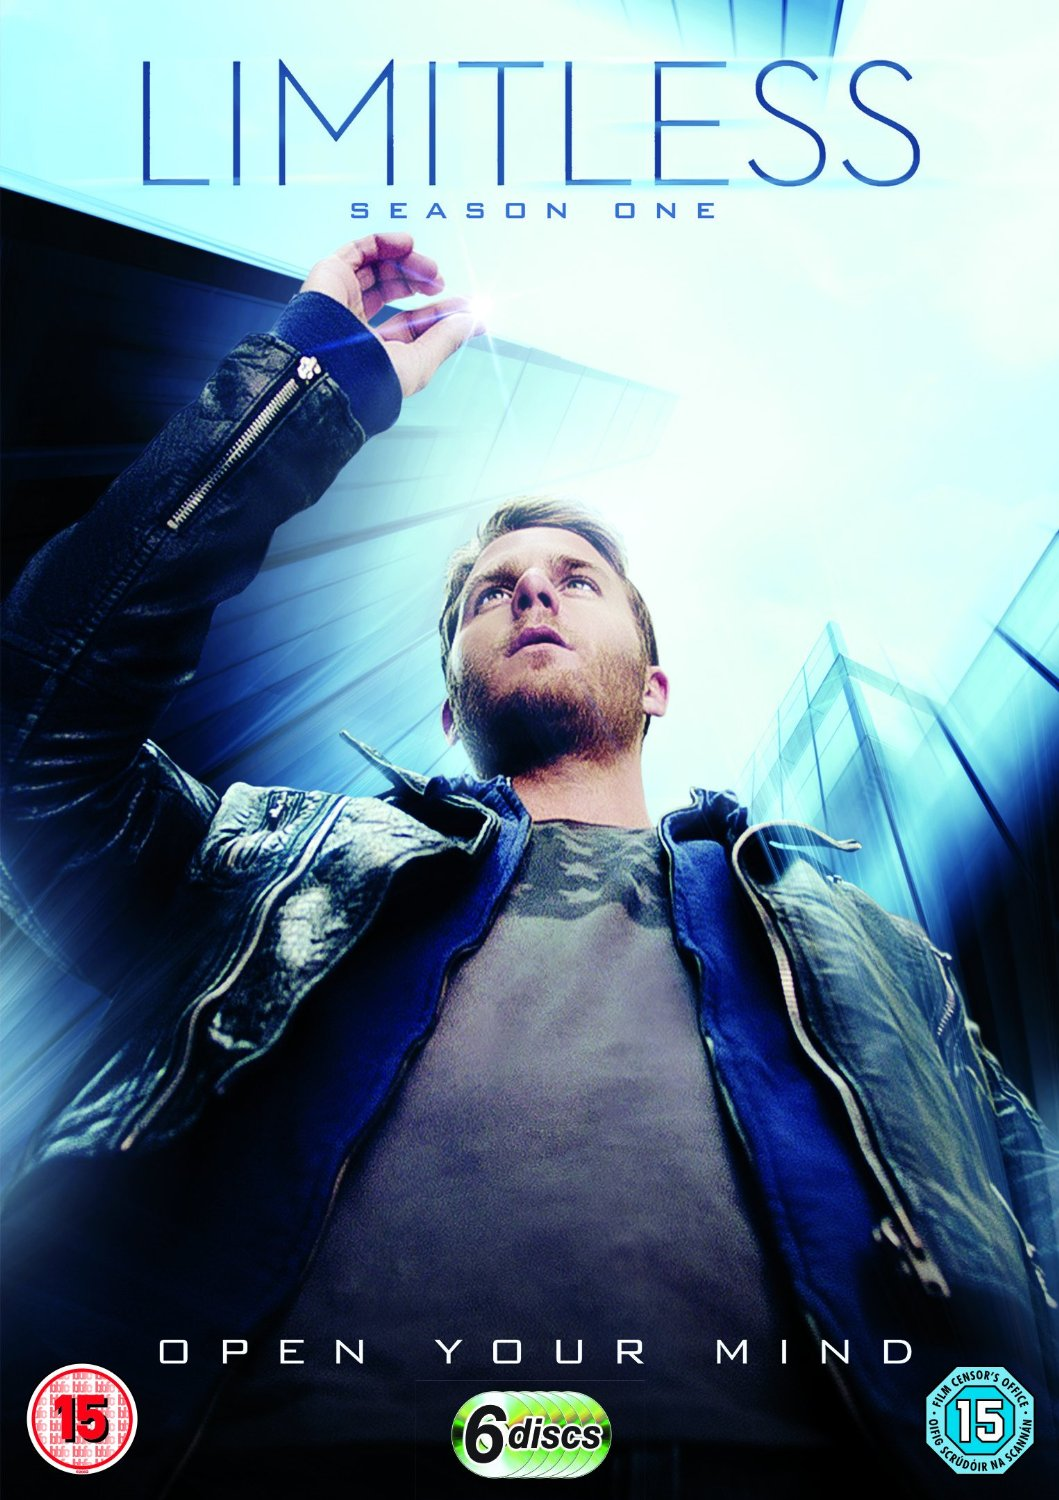 Limitless Season 1 DVD review